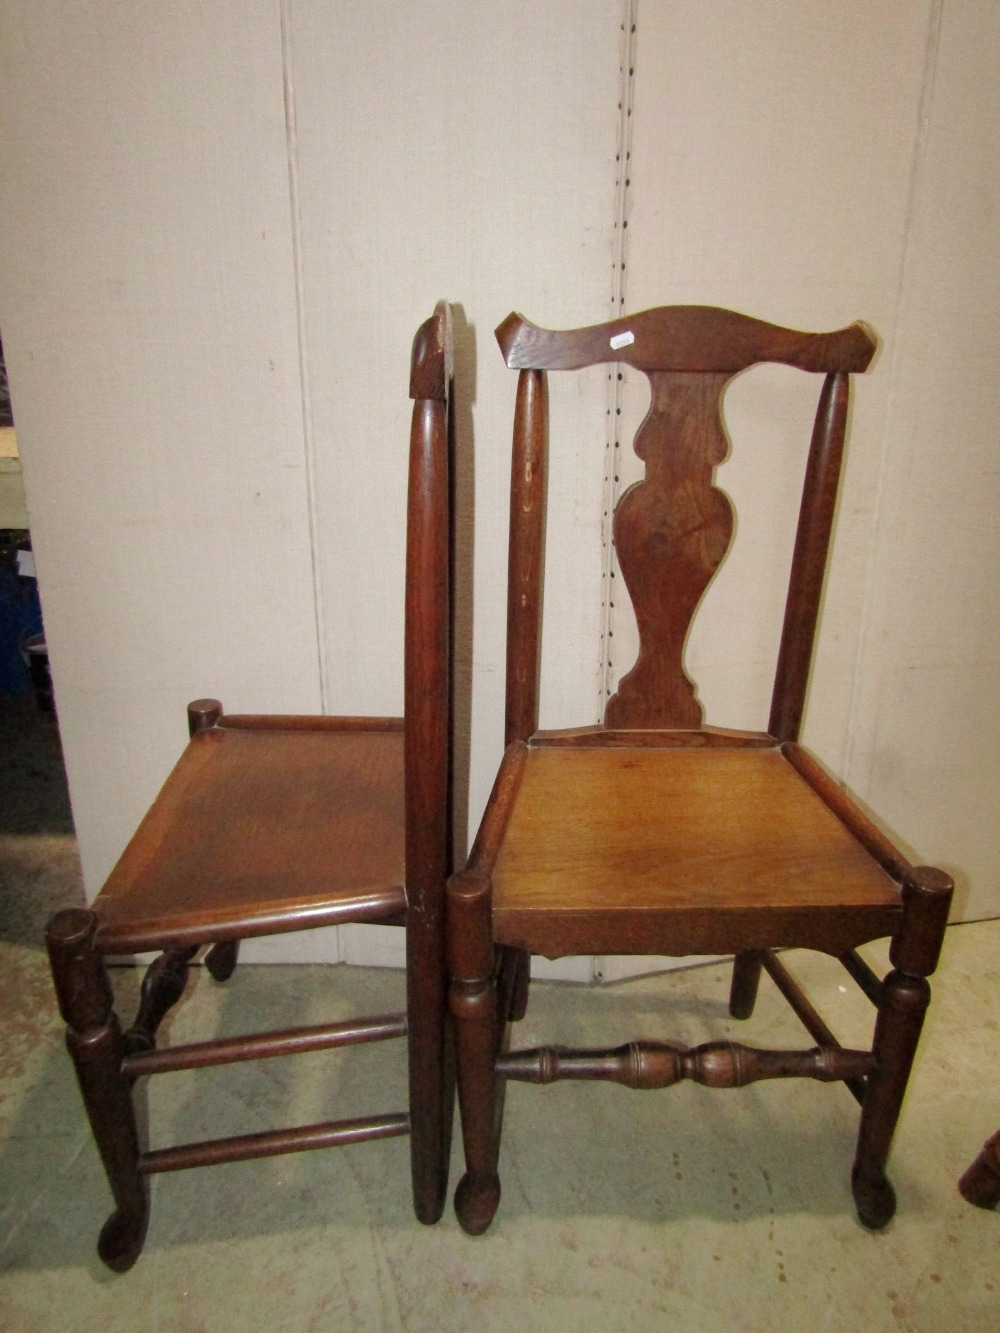 Lot 1385 - A pair of Georgian oak dining chairs with yoke shaped rails, vase shaped splats, solid seats